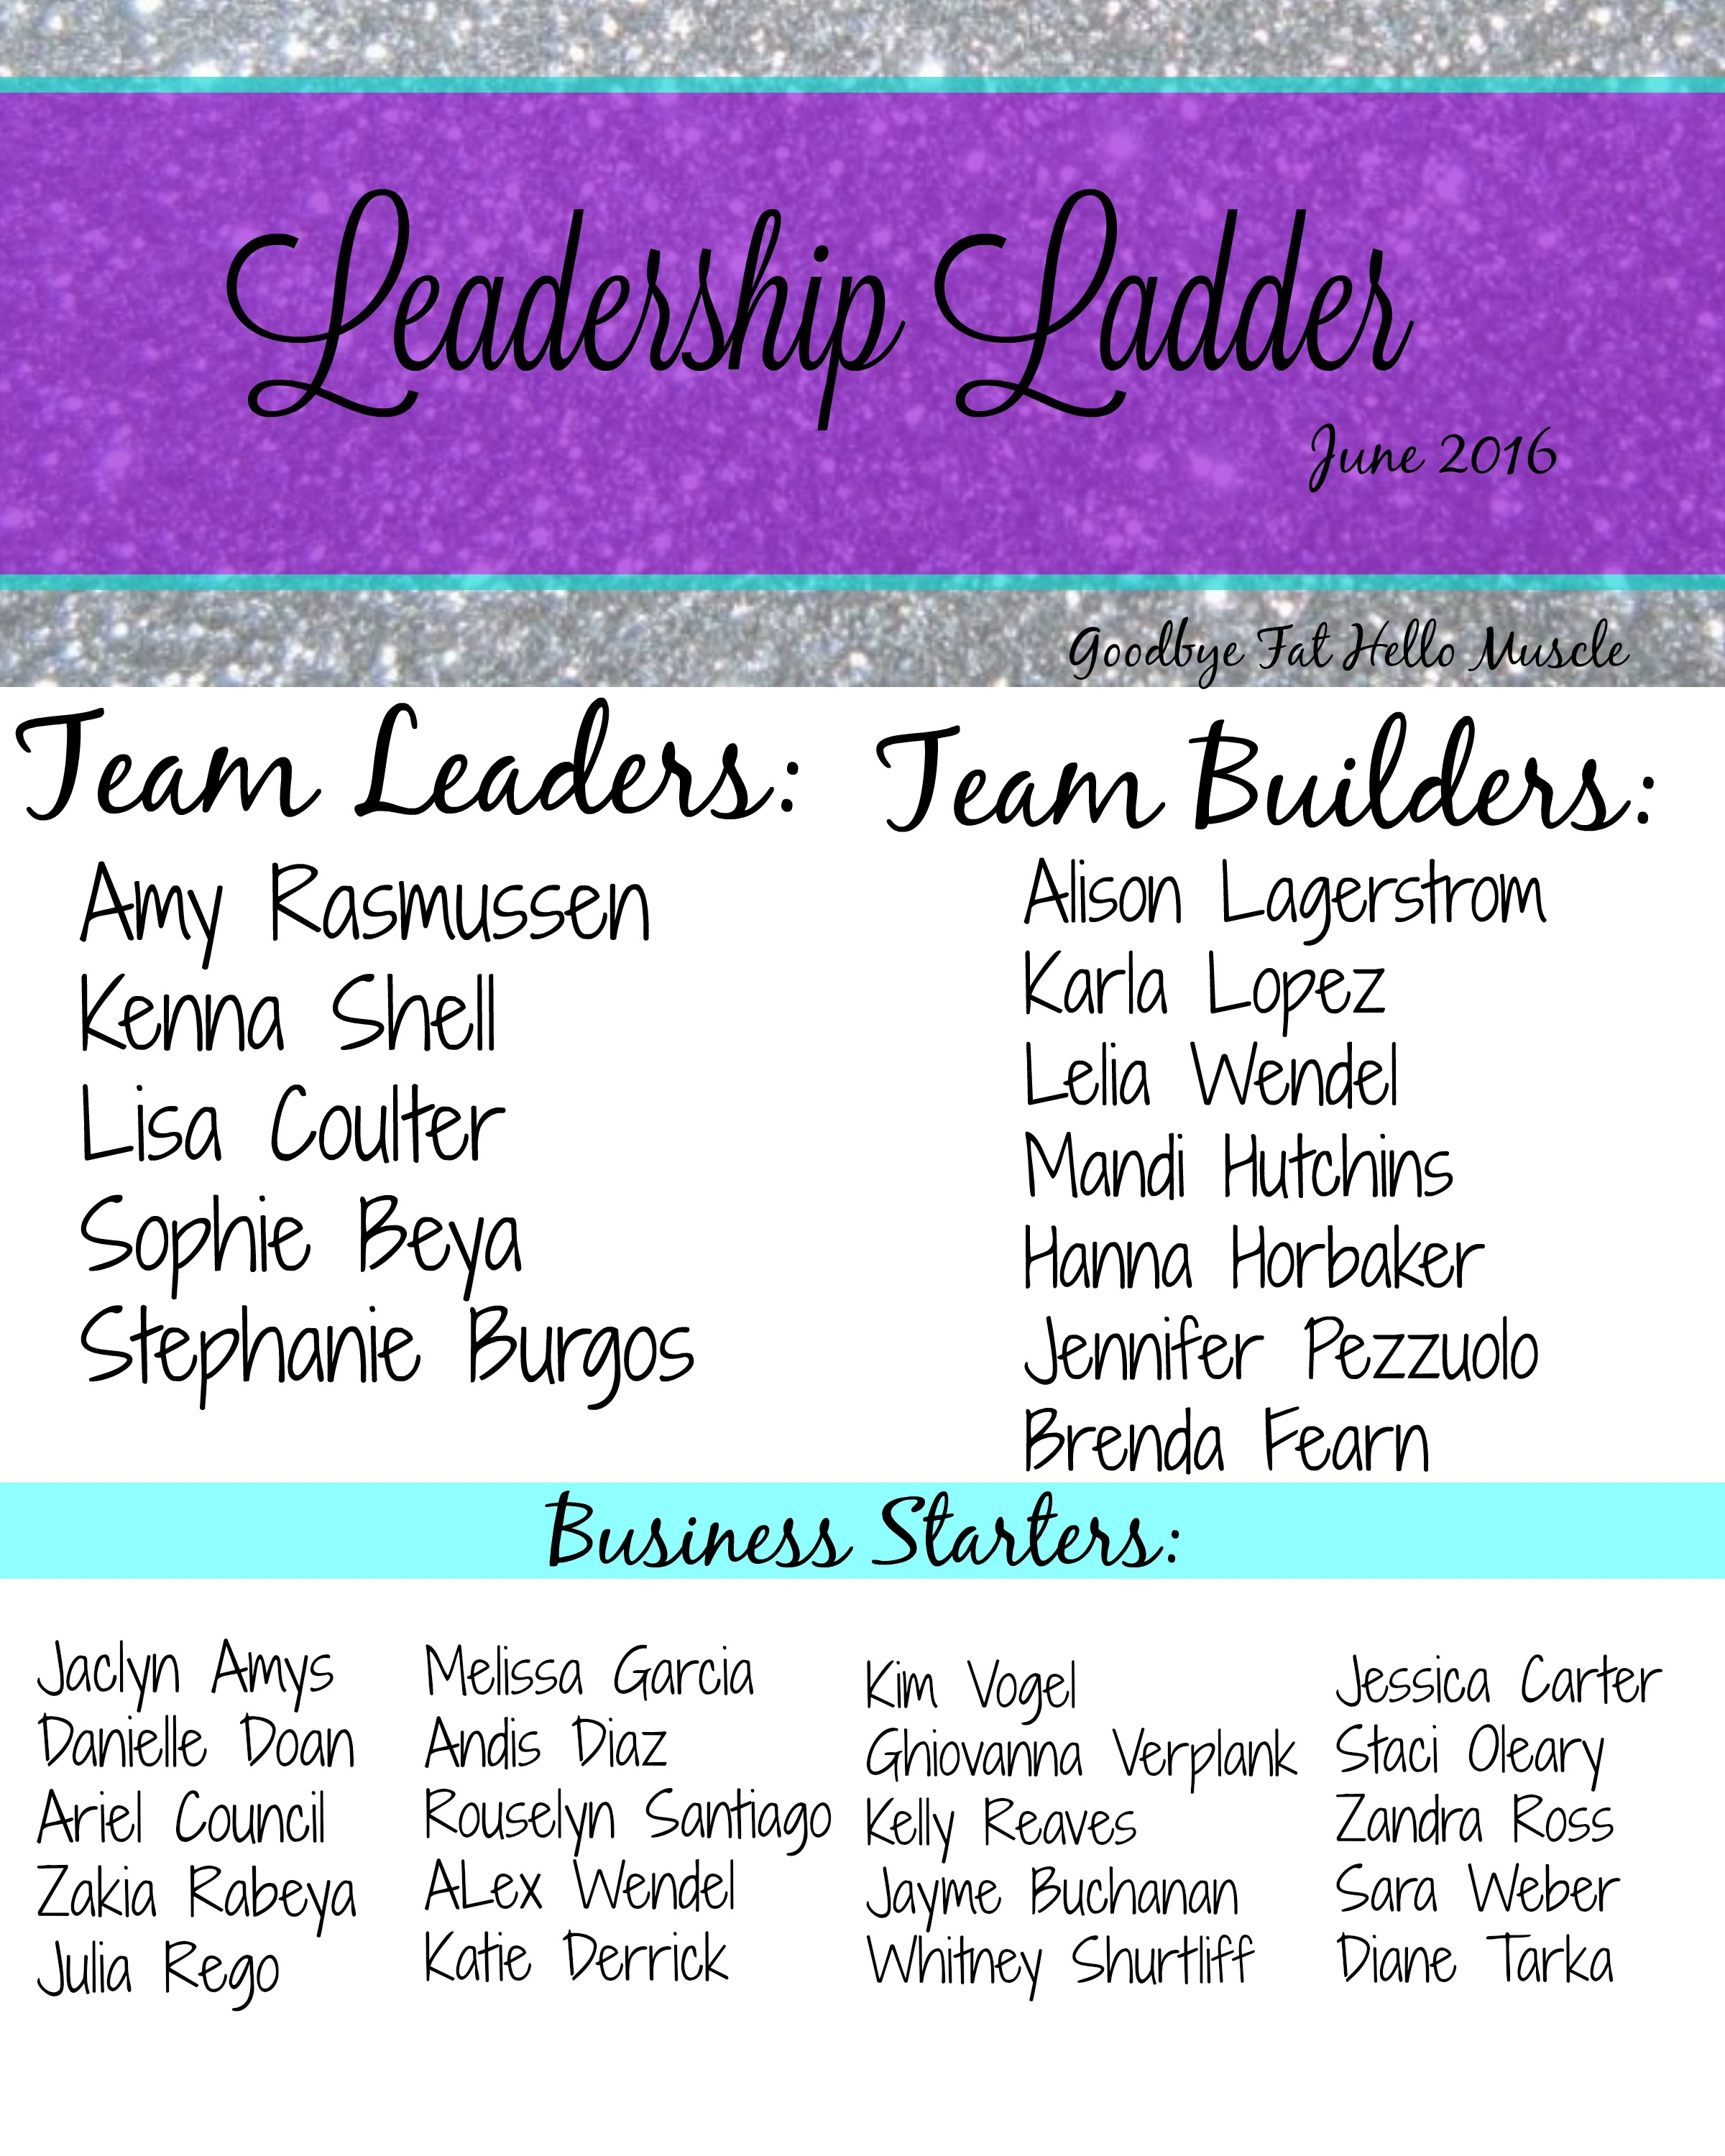 Look at all these LEADERS!